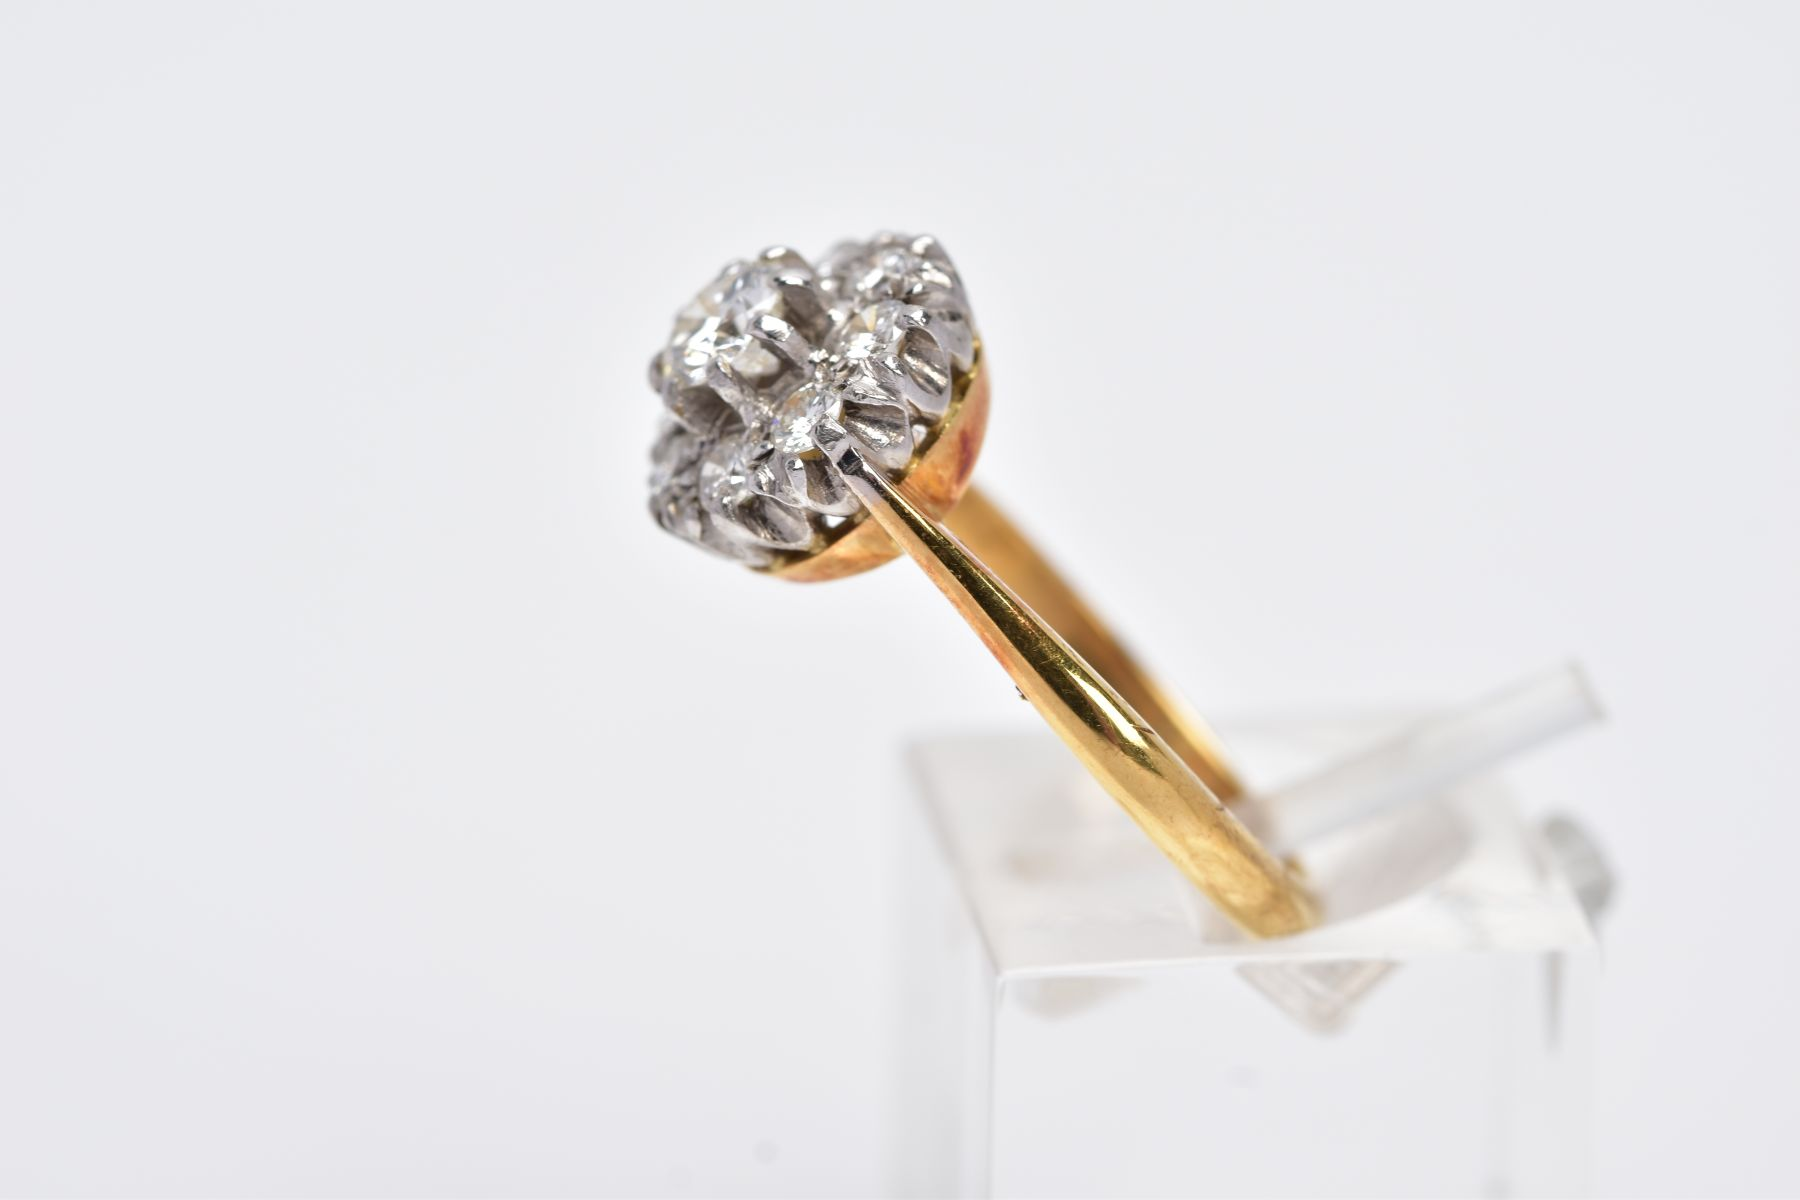 A LATE 20TH CENTURY ROUND DIAMOND CLUSTER RING, centring on a modern round brilliant cut diamond, - Image 2 of 5